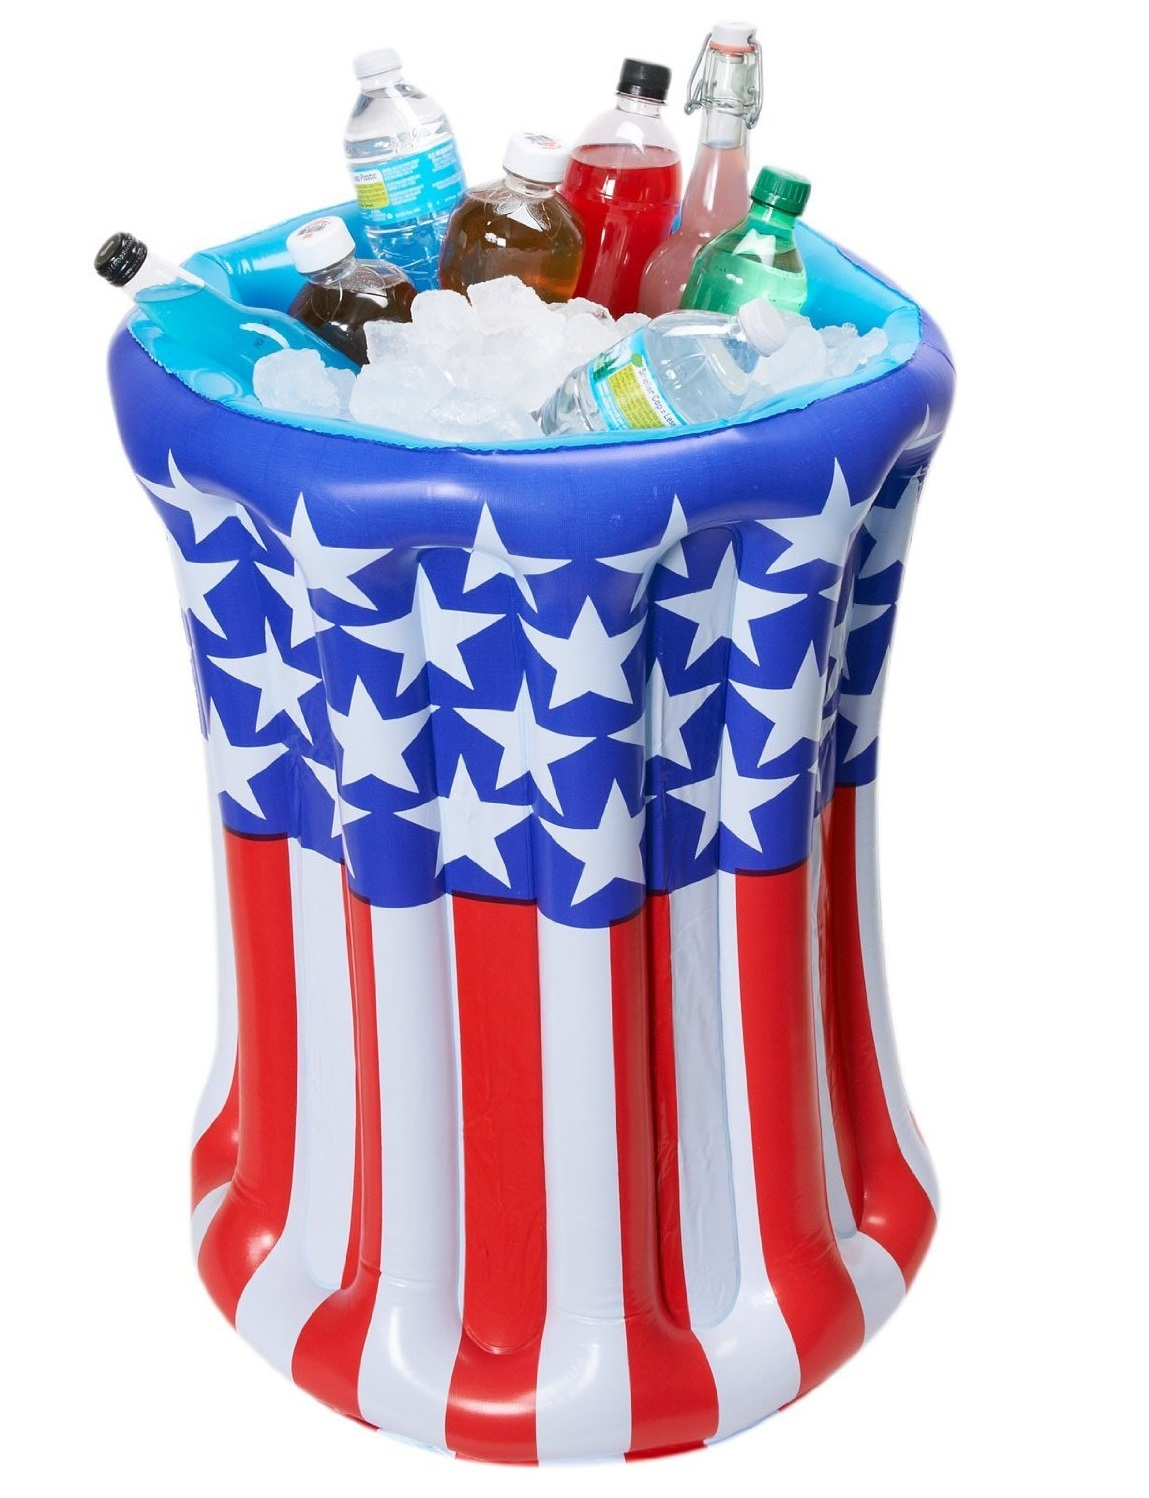 4th Of July Scavenger Hunt Ideas – Find And Feed